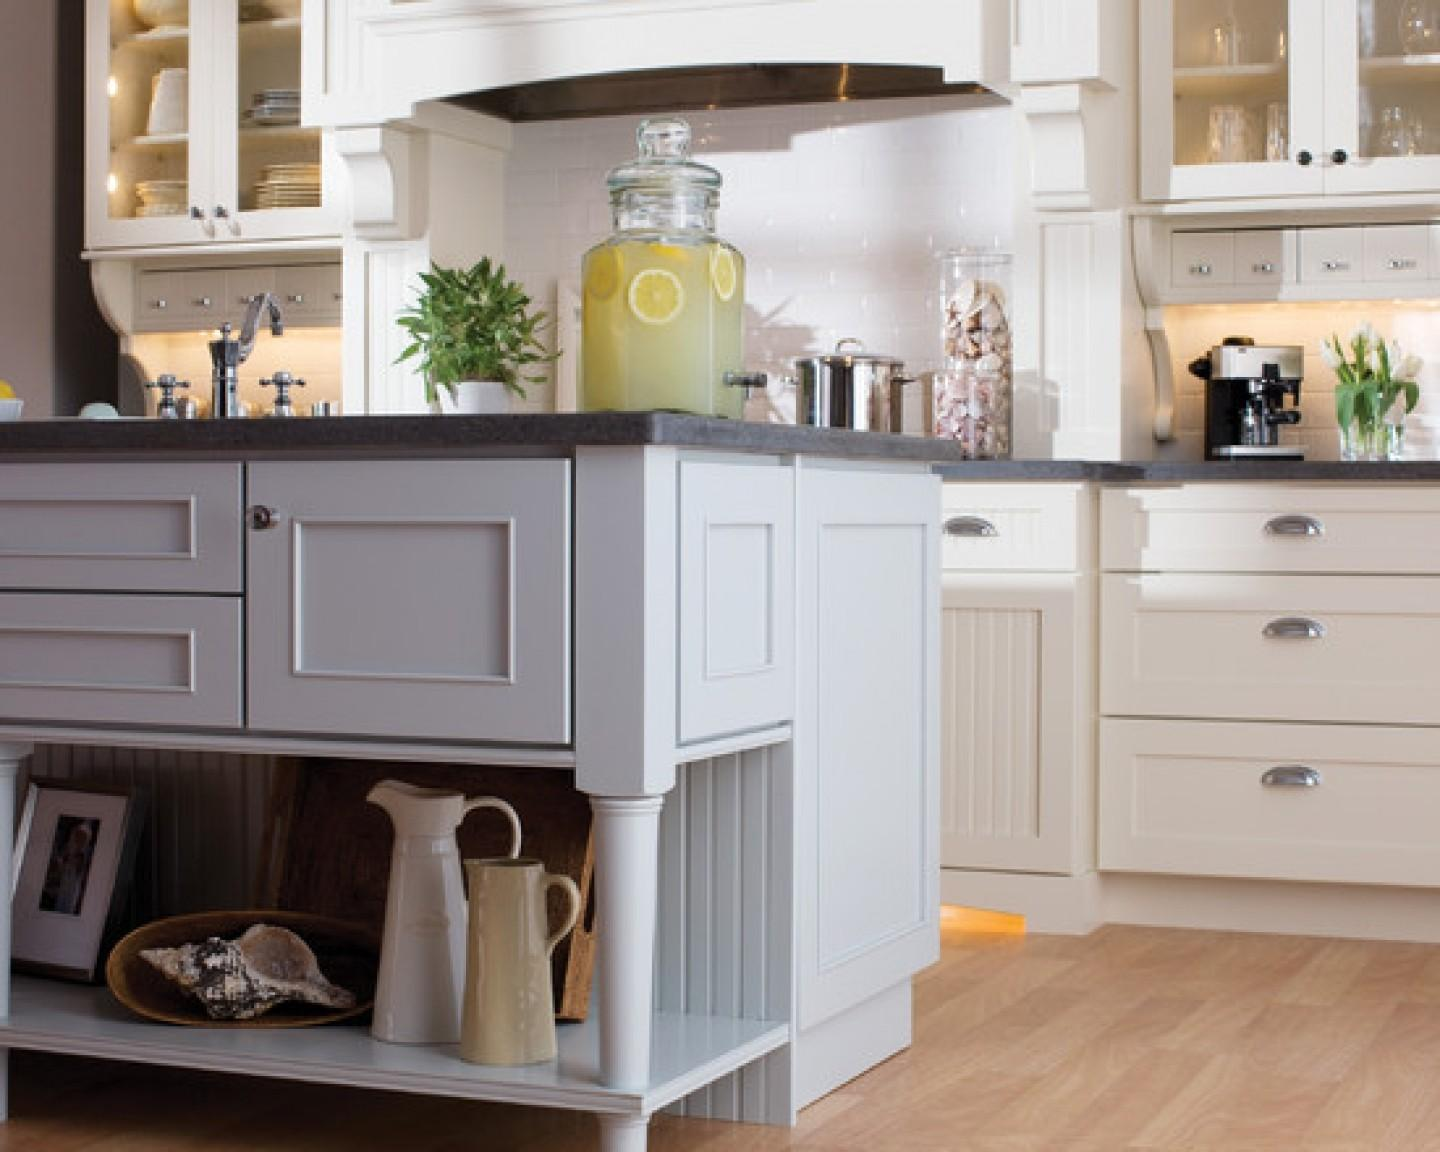 Cucine country chic moderne 2